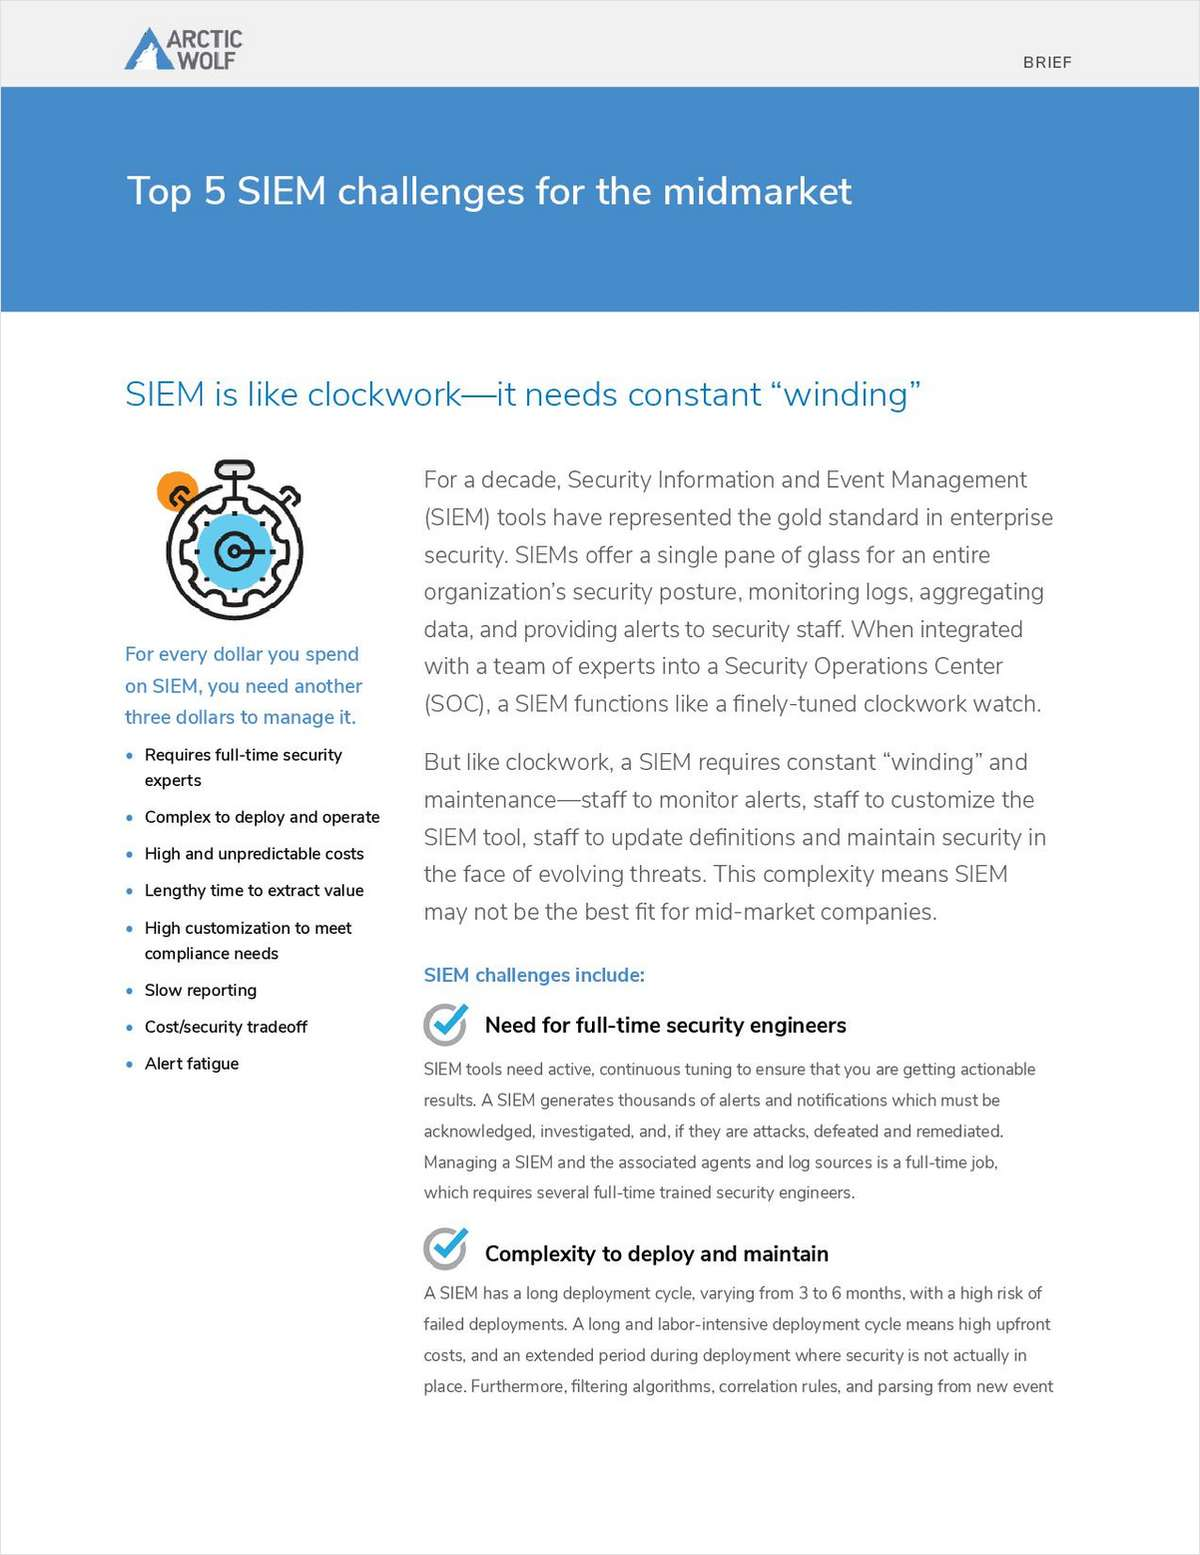 Top 5 SIEM Challenges for the MidMarket